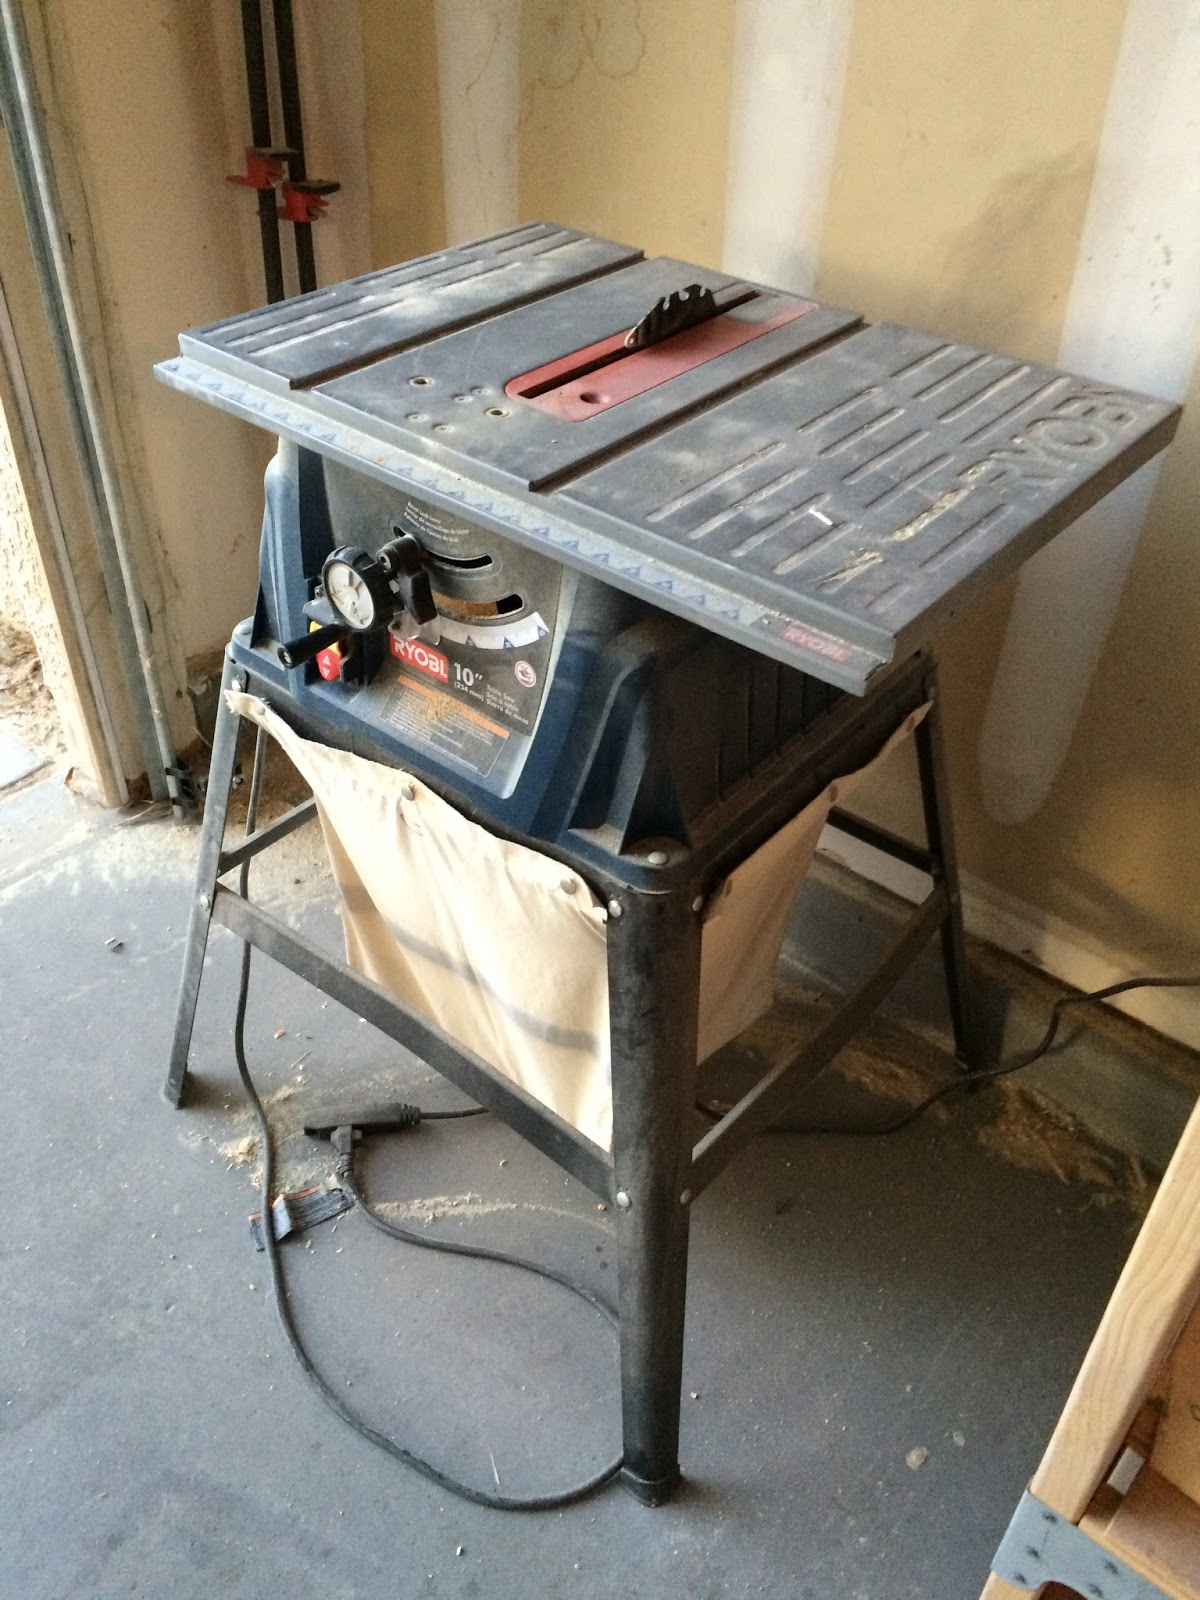 Timbos creations spare 2x4 project benchtop table saw table the ryobi table saw was a good beginners table saw but it did have many problems it couldnt accept dado blades the fence was problematic at best greentooth Images